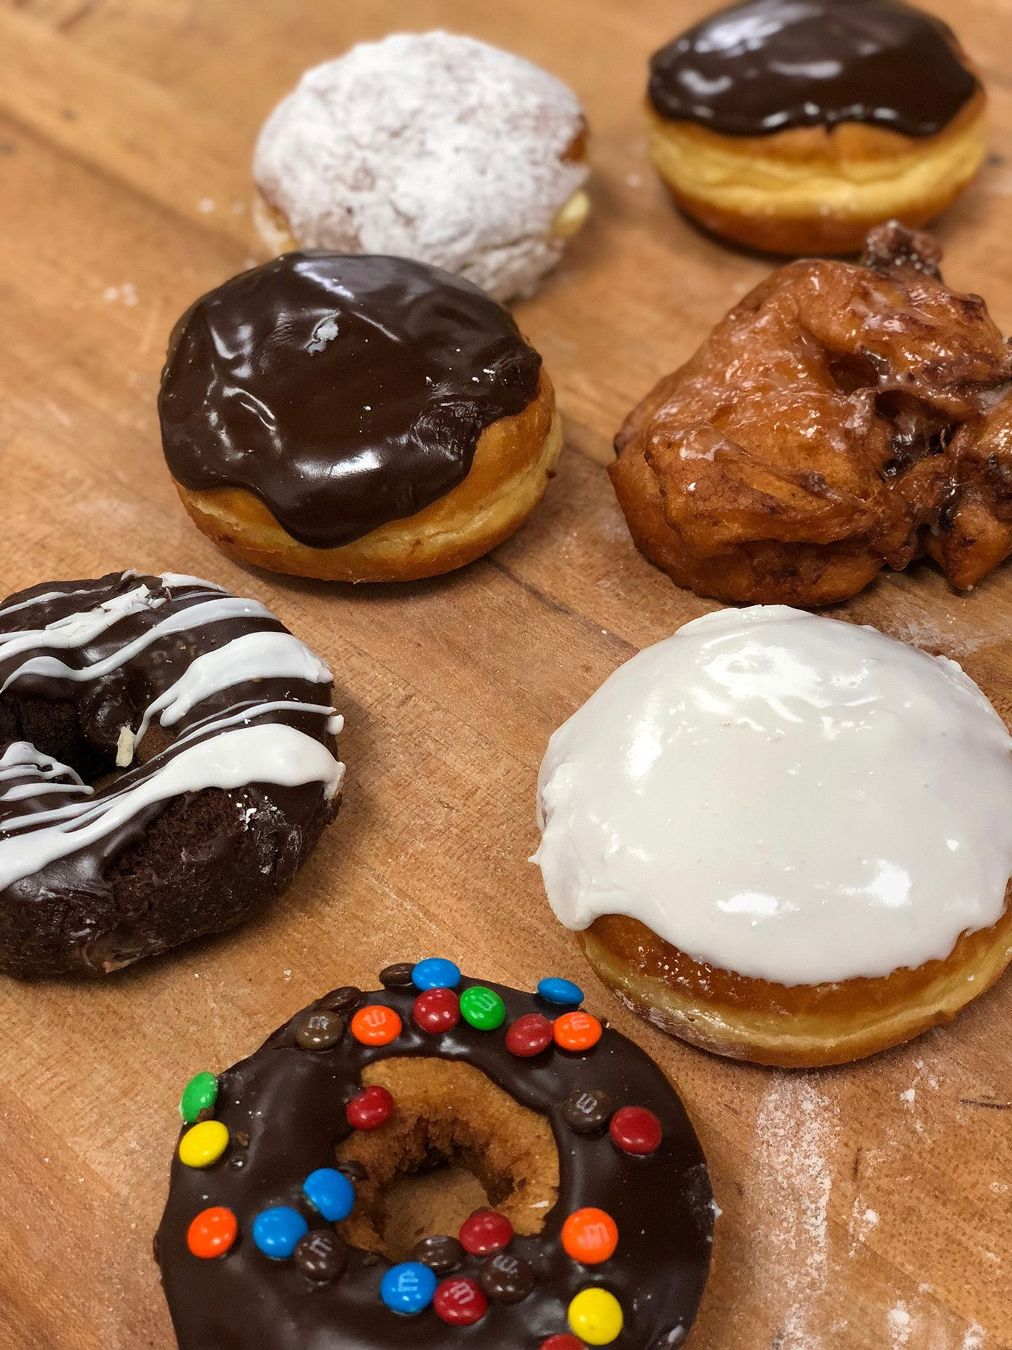 Photo of various donuts